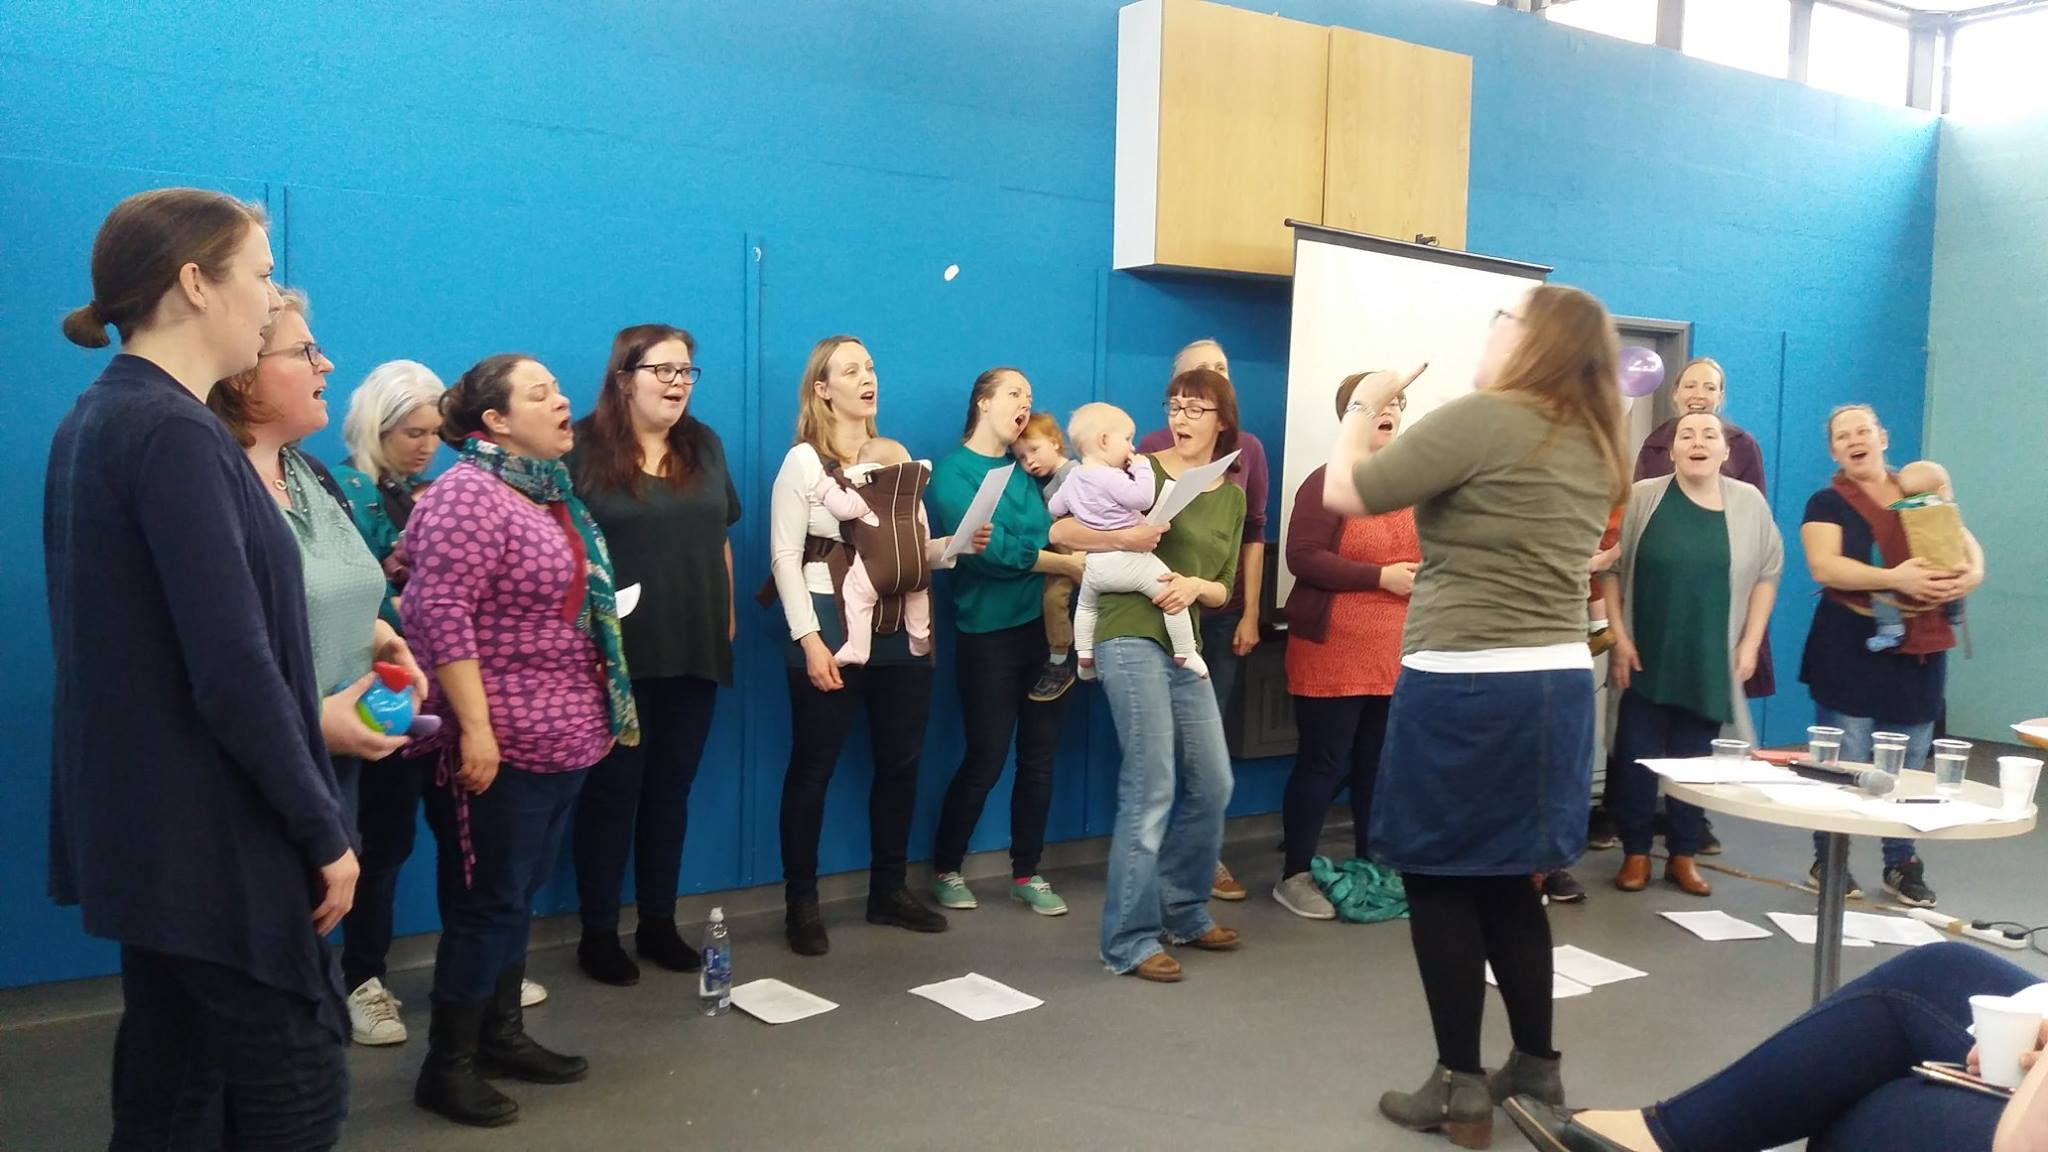 Baby Blues Choir sings up a storm at International Women's Day - The